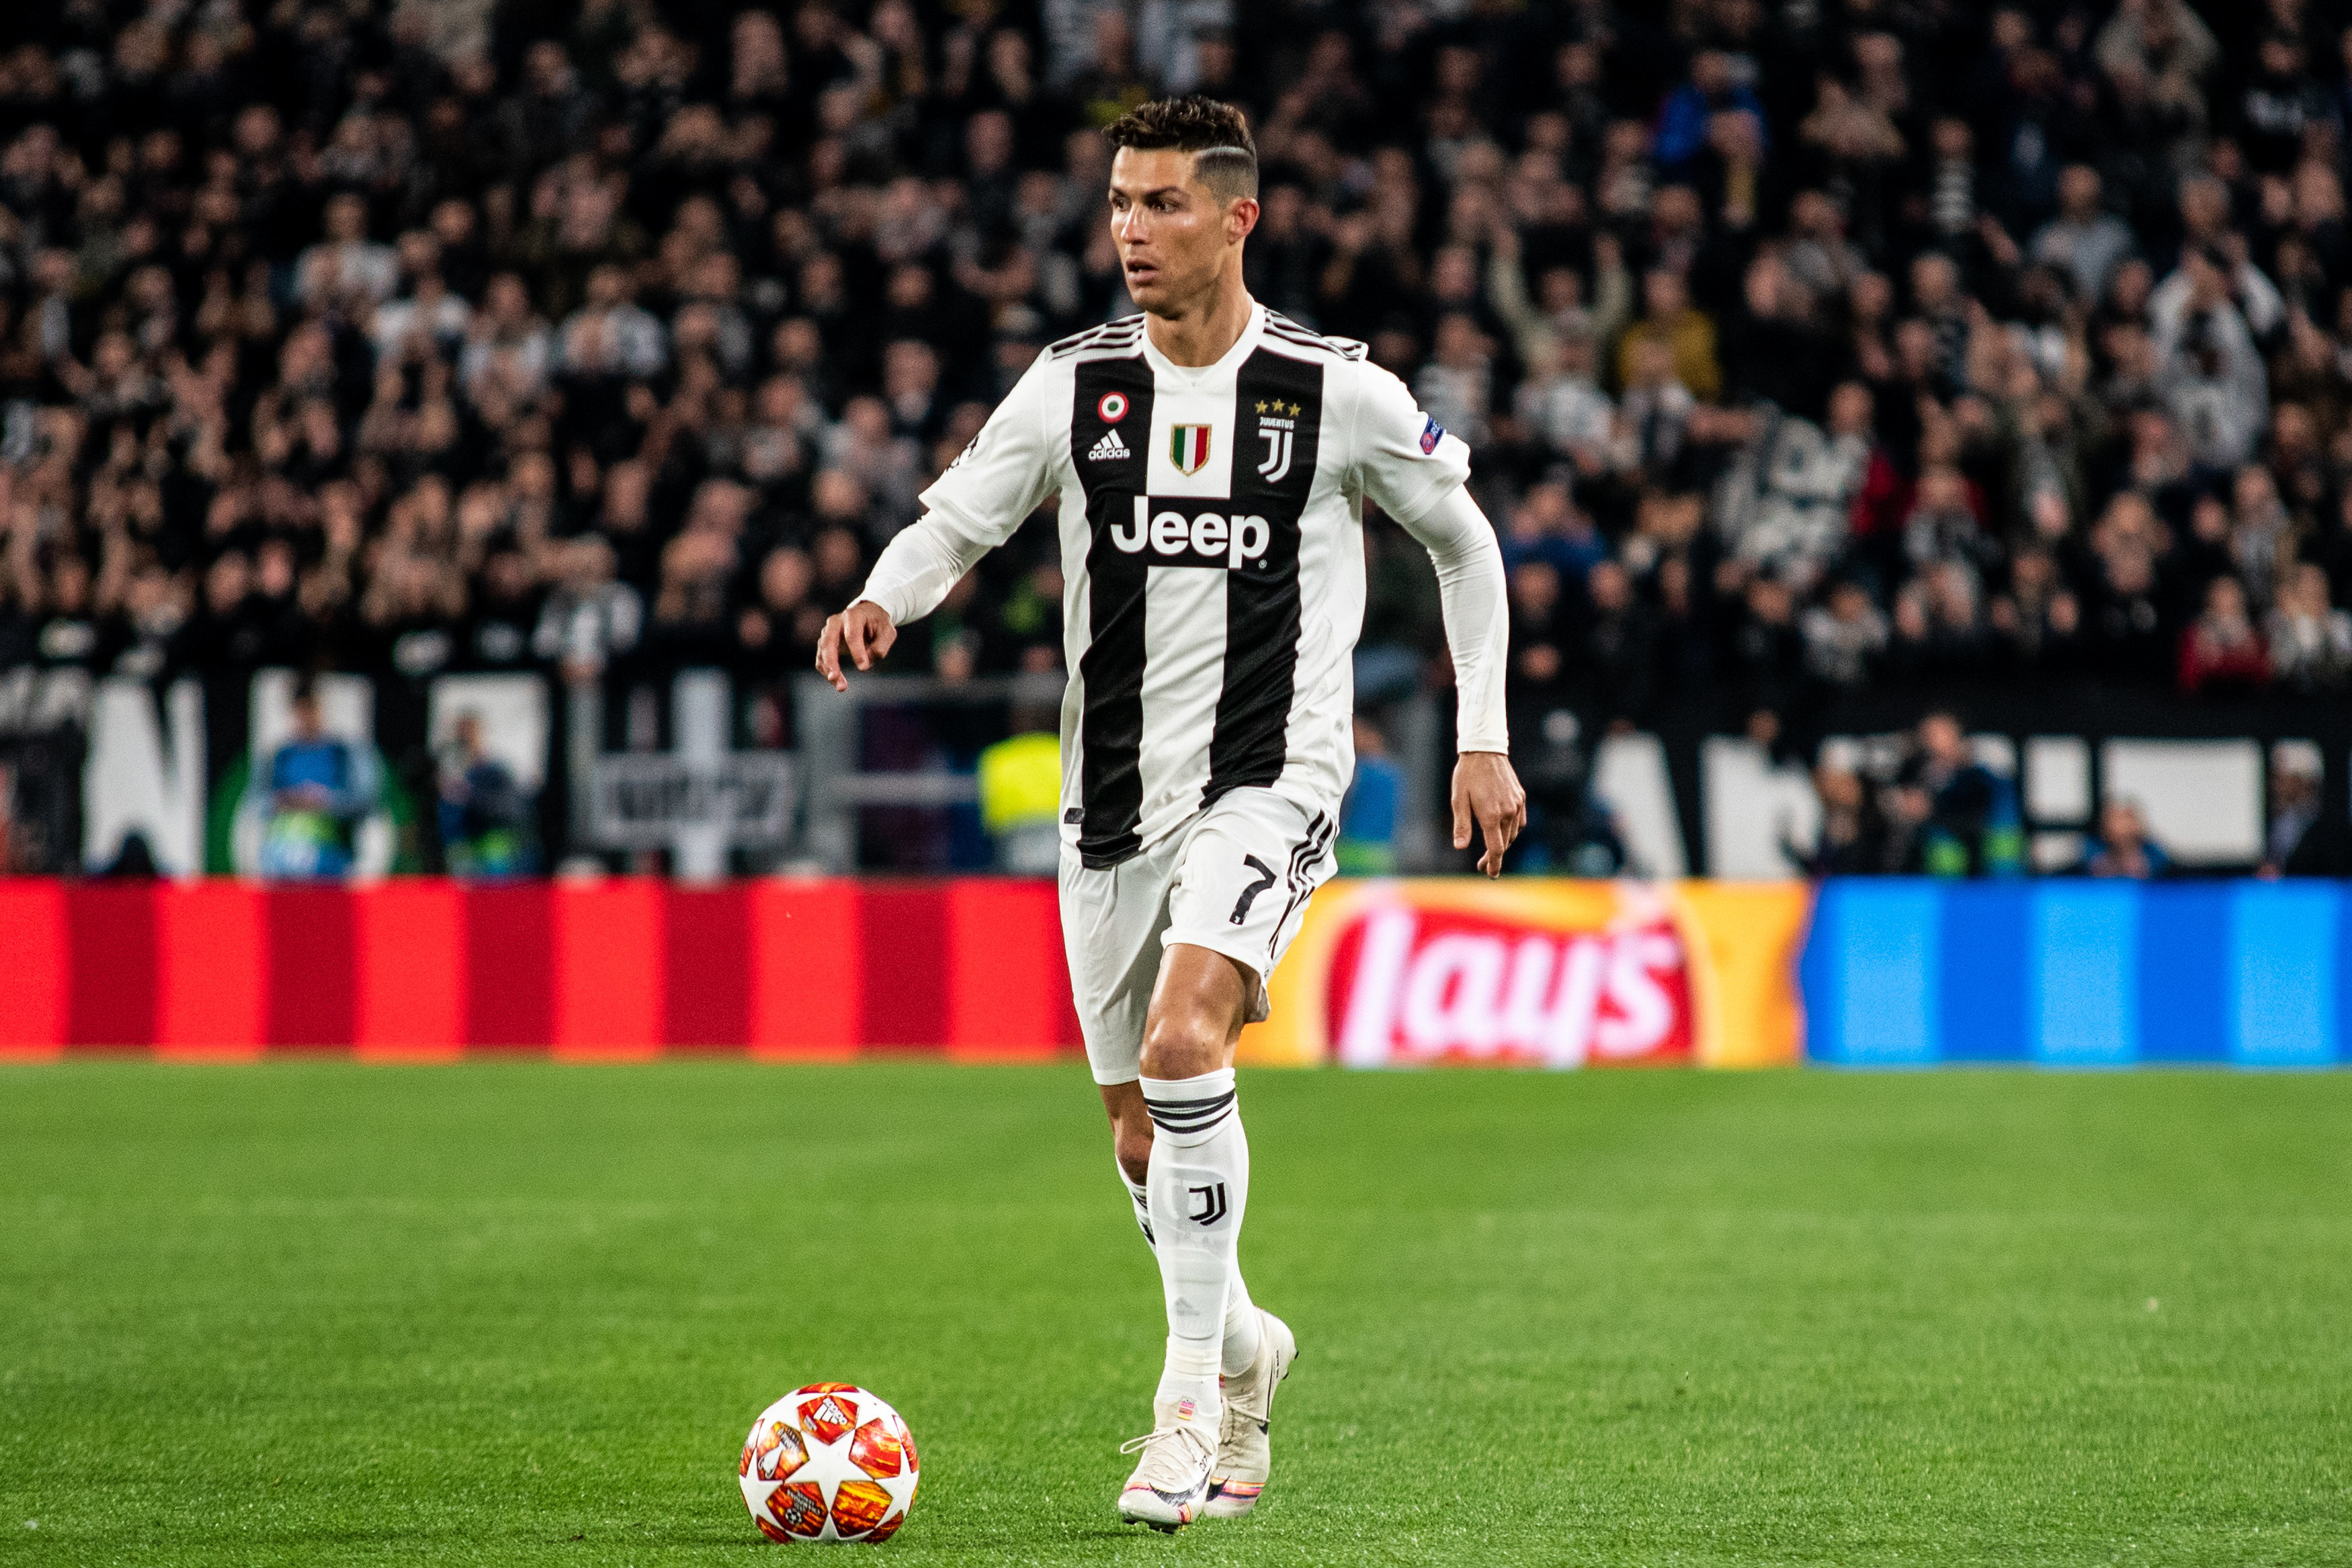 Cristiano Ronaldo: Juventus aces have SUFFERED after Real Madrid move - Marco Tardelli